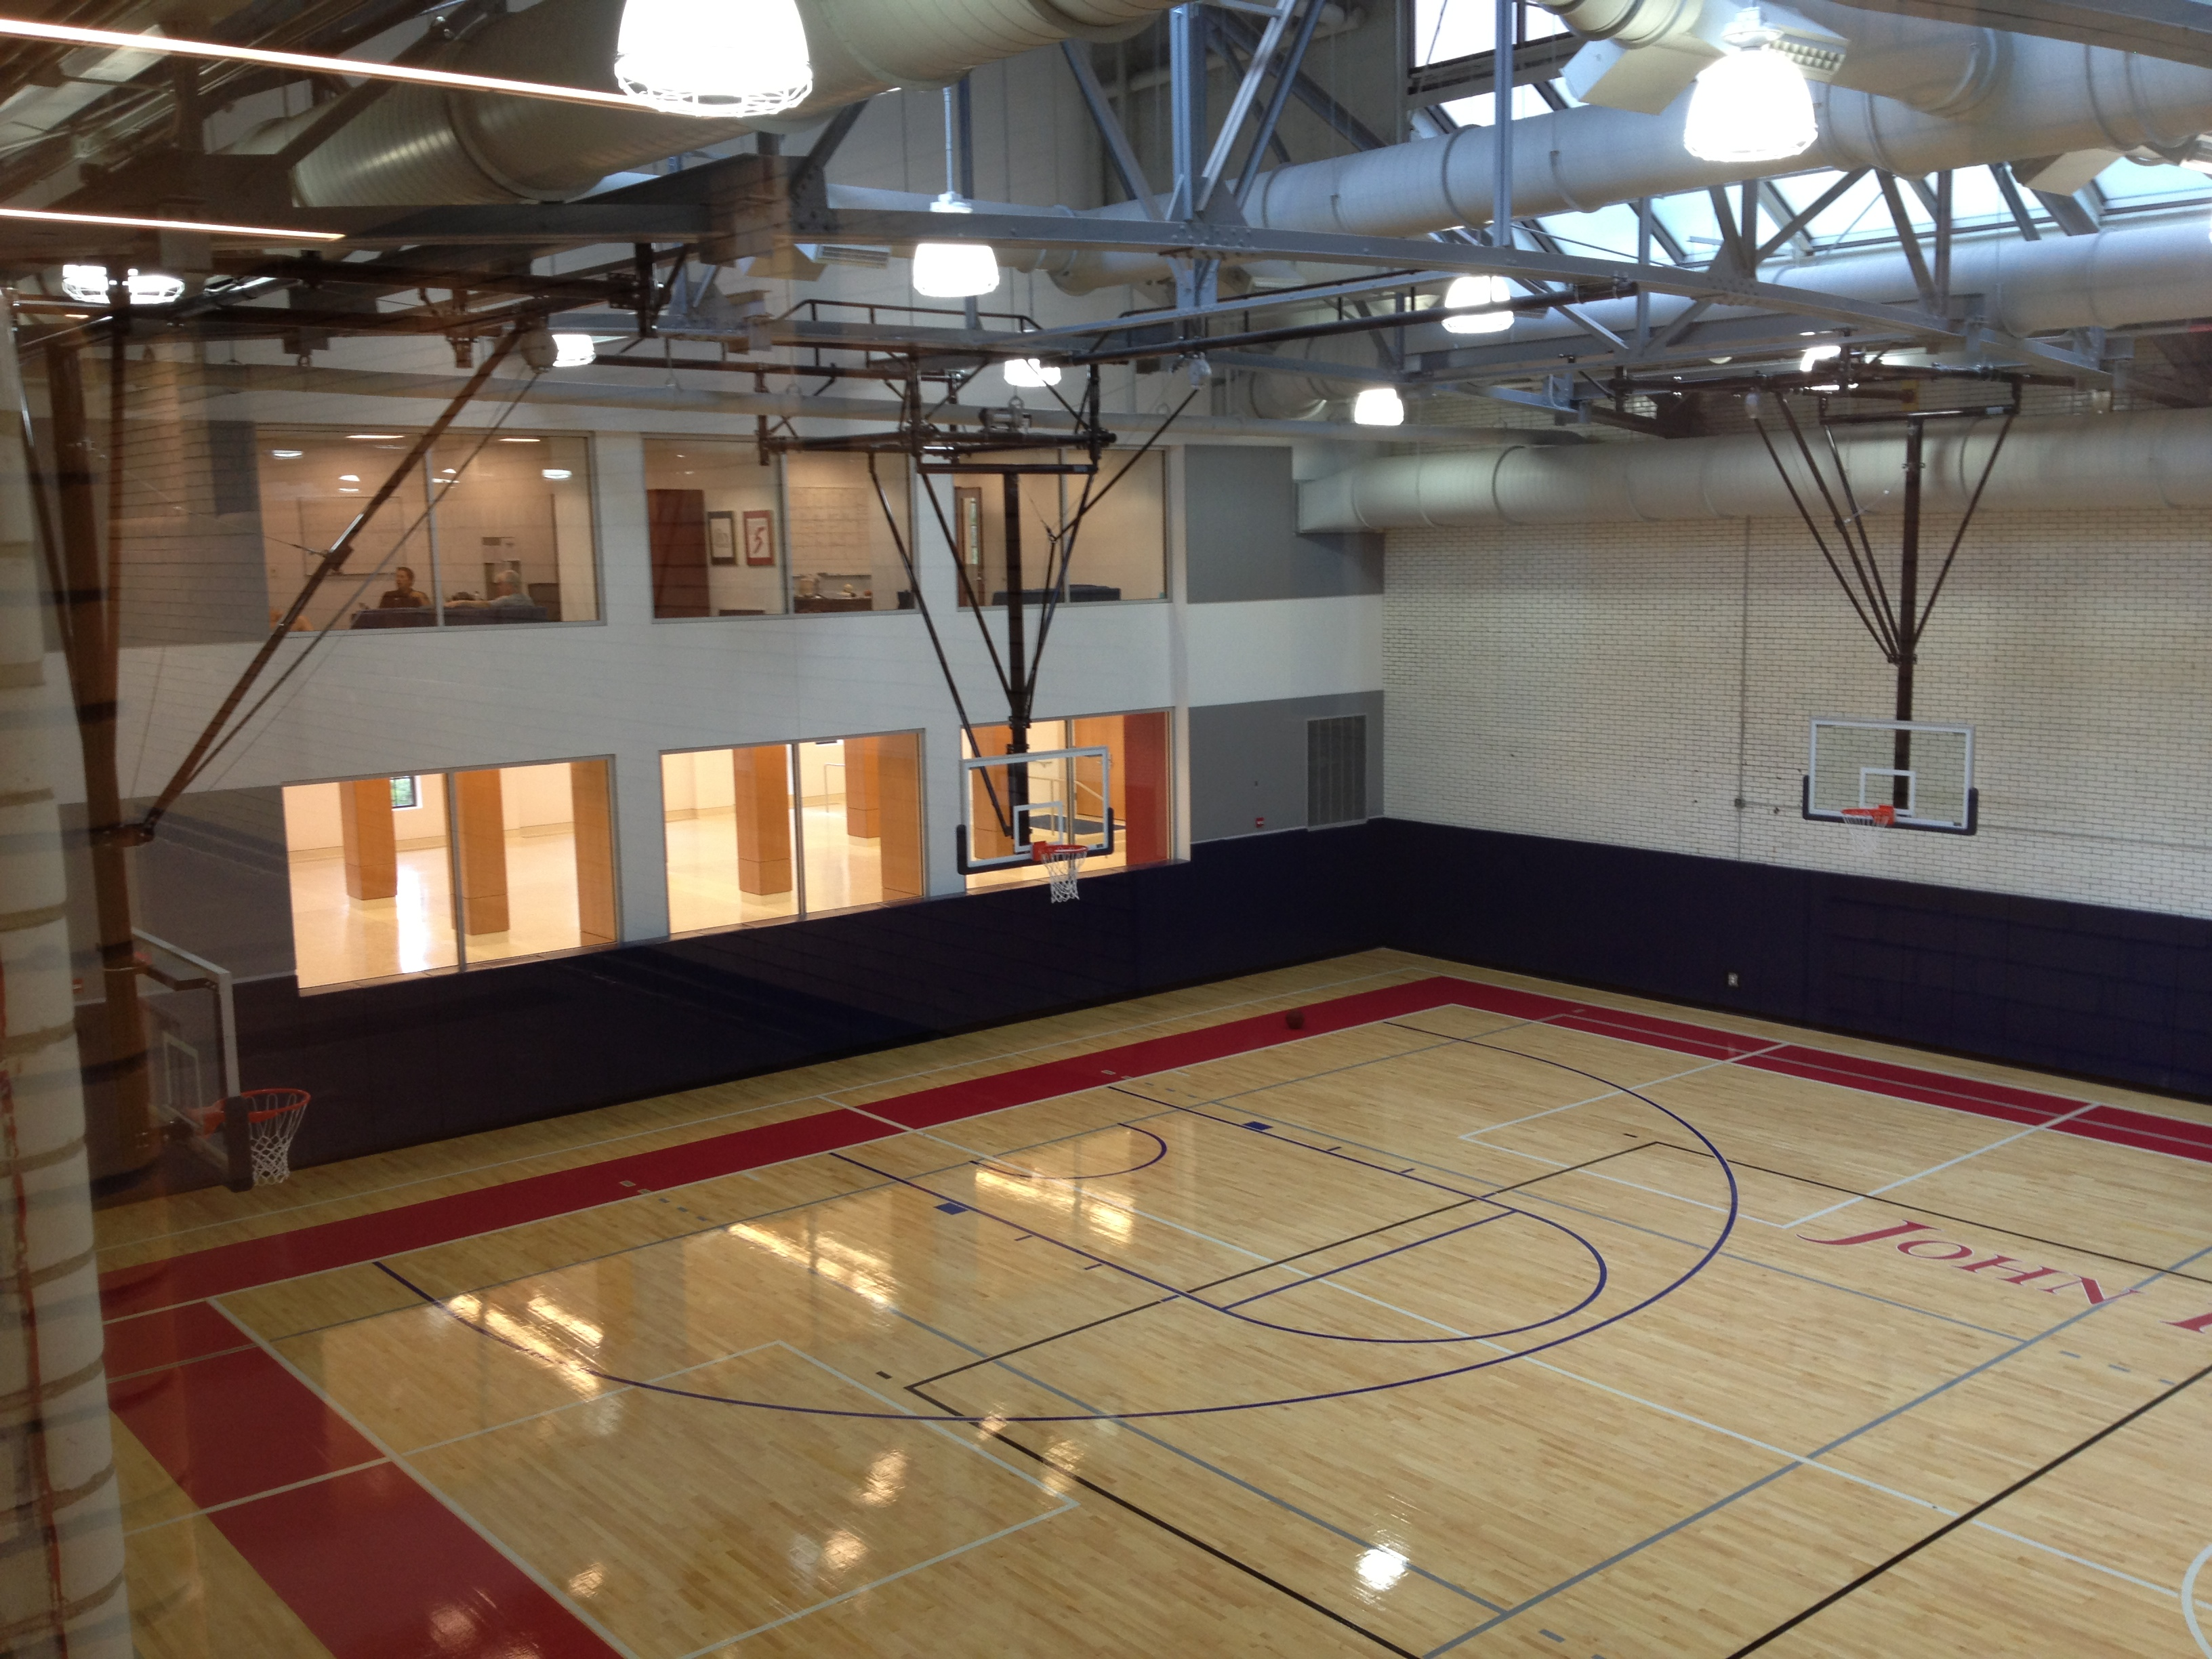 Penn Basketball Has A Beautiful New Practice Facility At